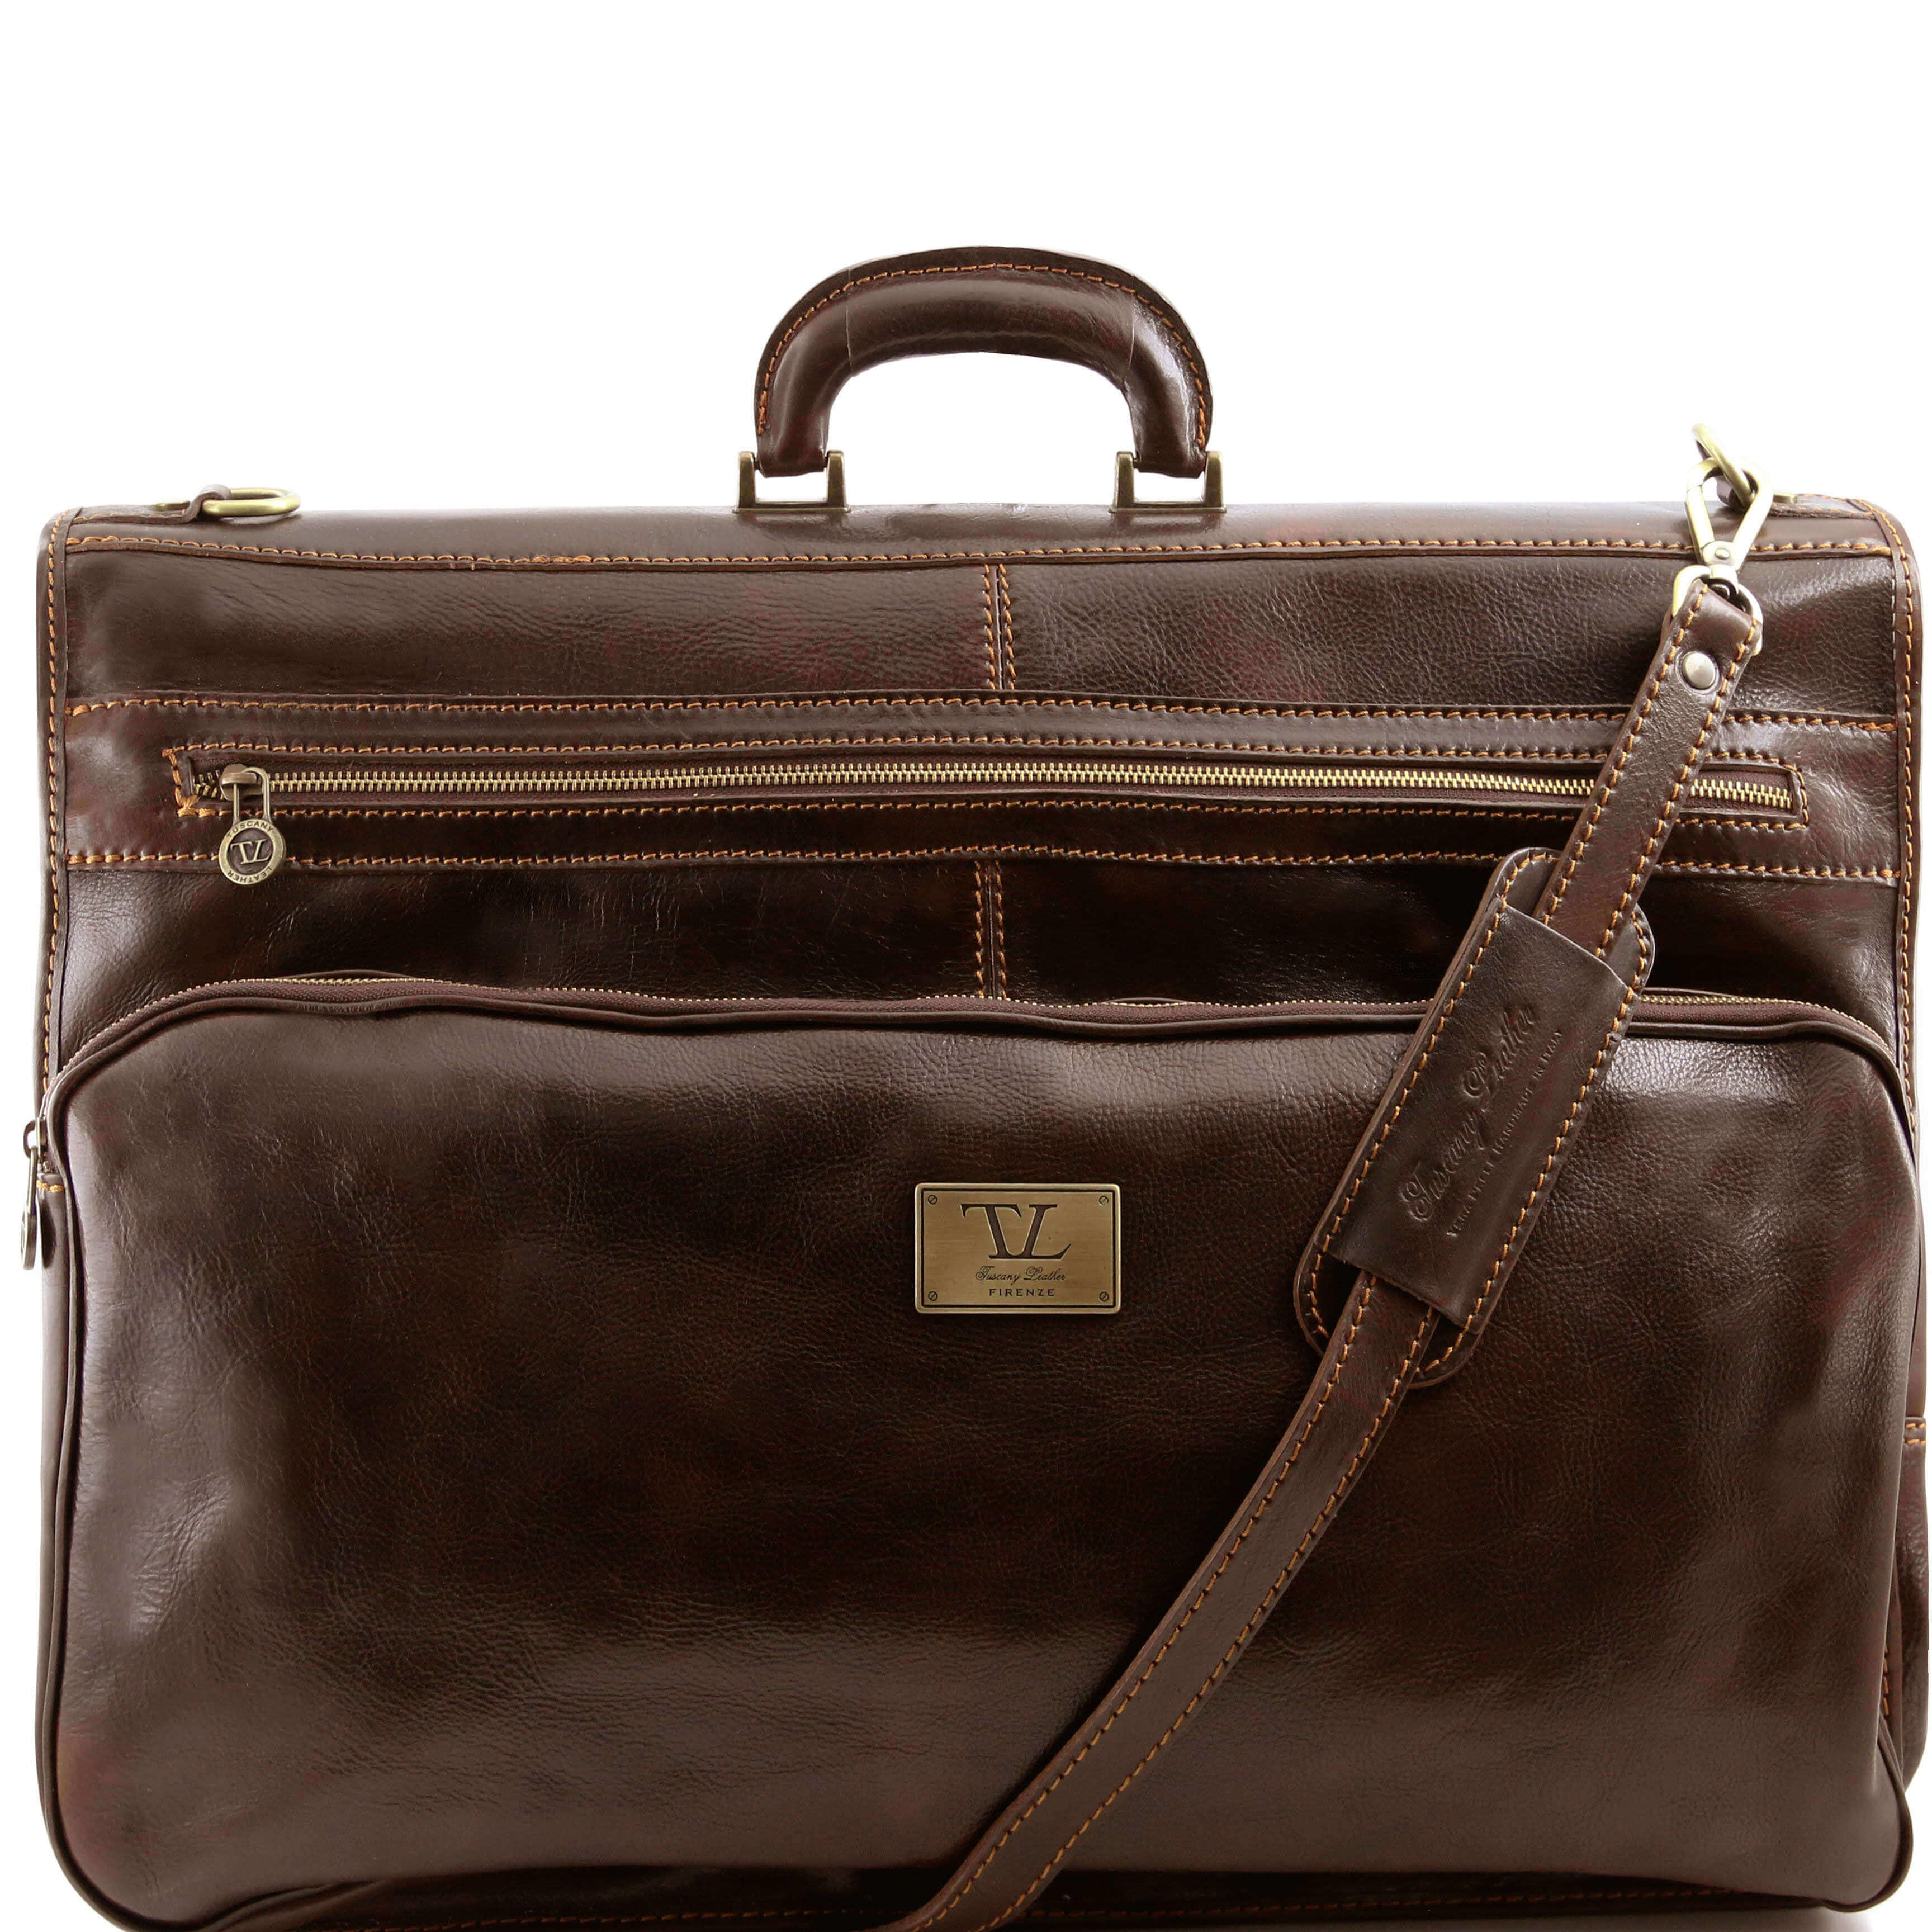 TL3056 Papeete Leather Suit - Garment Carrier Travel Bag Holdall - Dark Brown